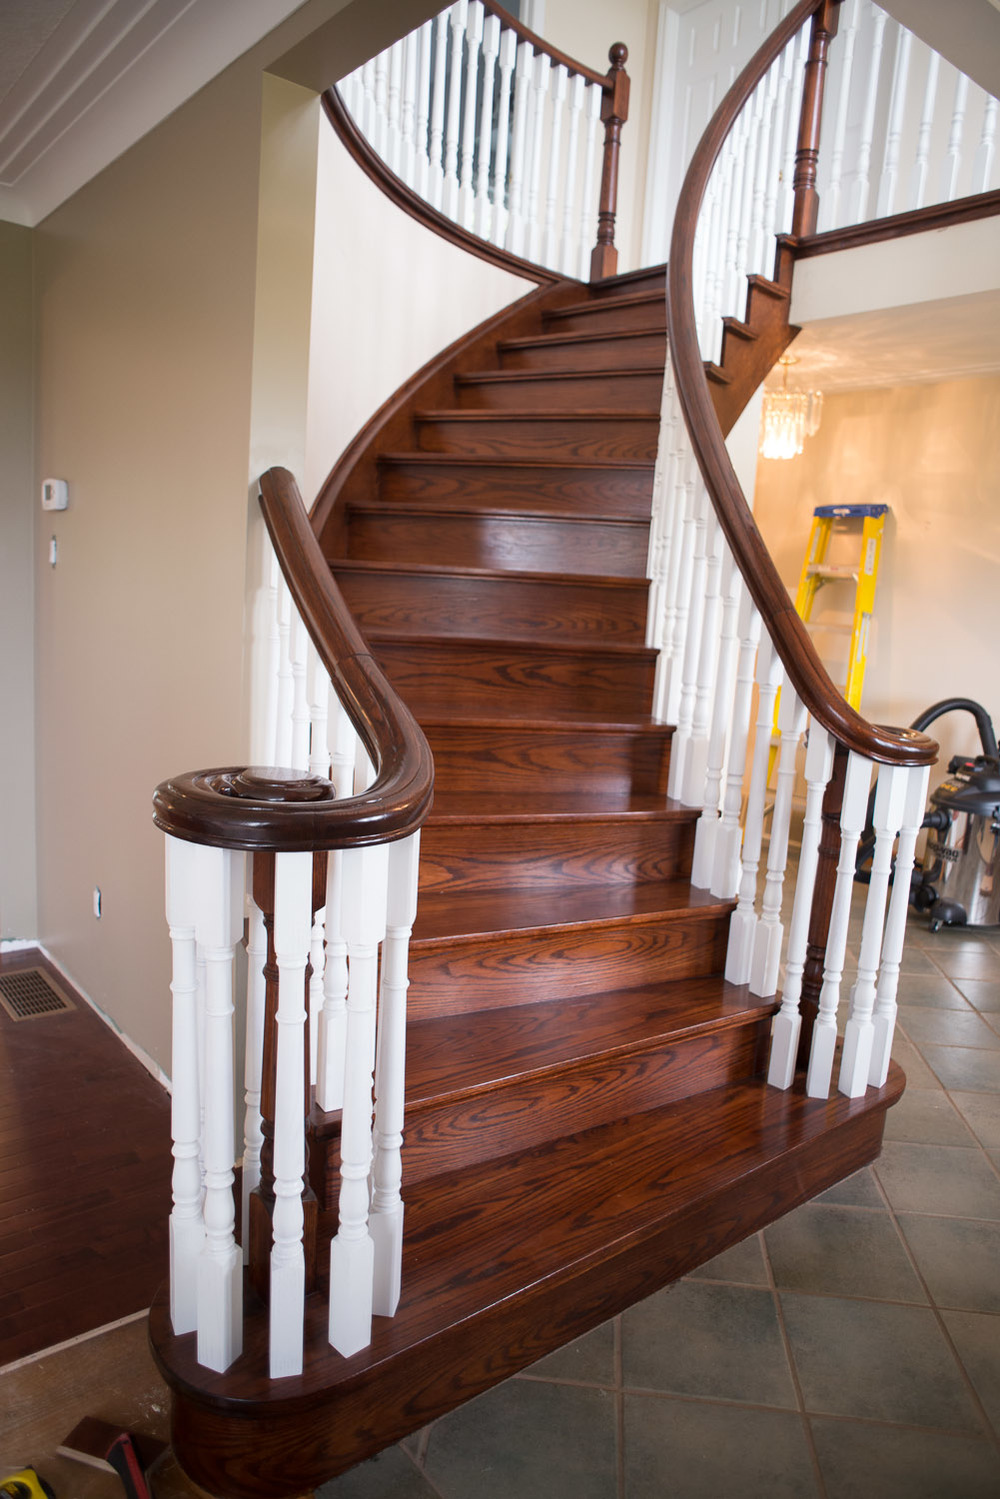 Newton-Staircase-Spindles-001.jpg